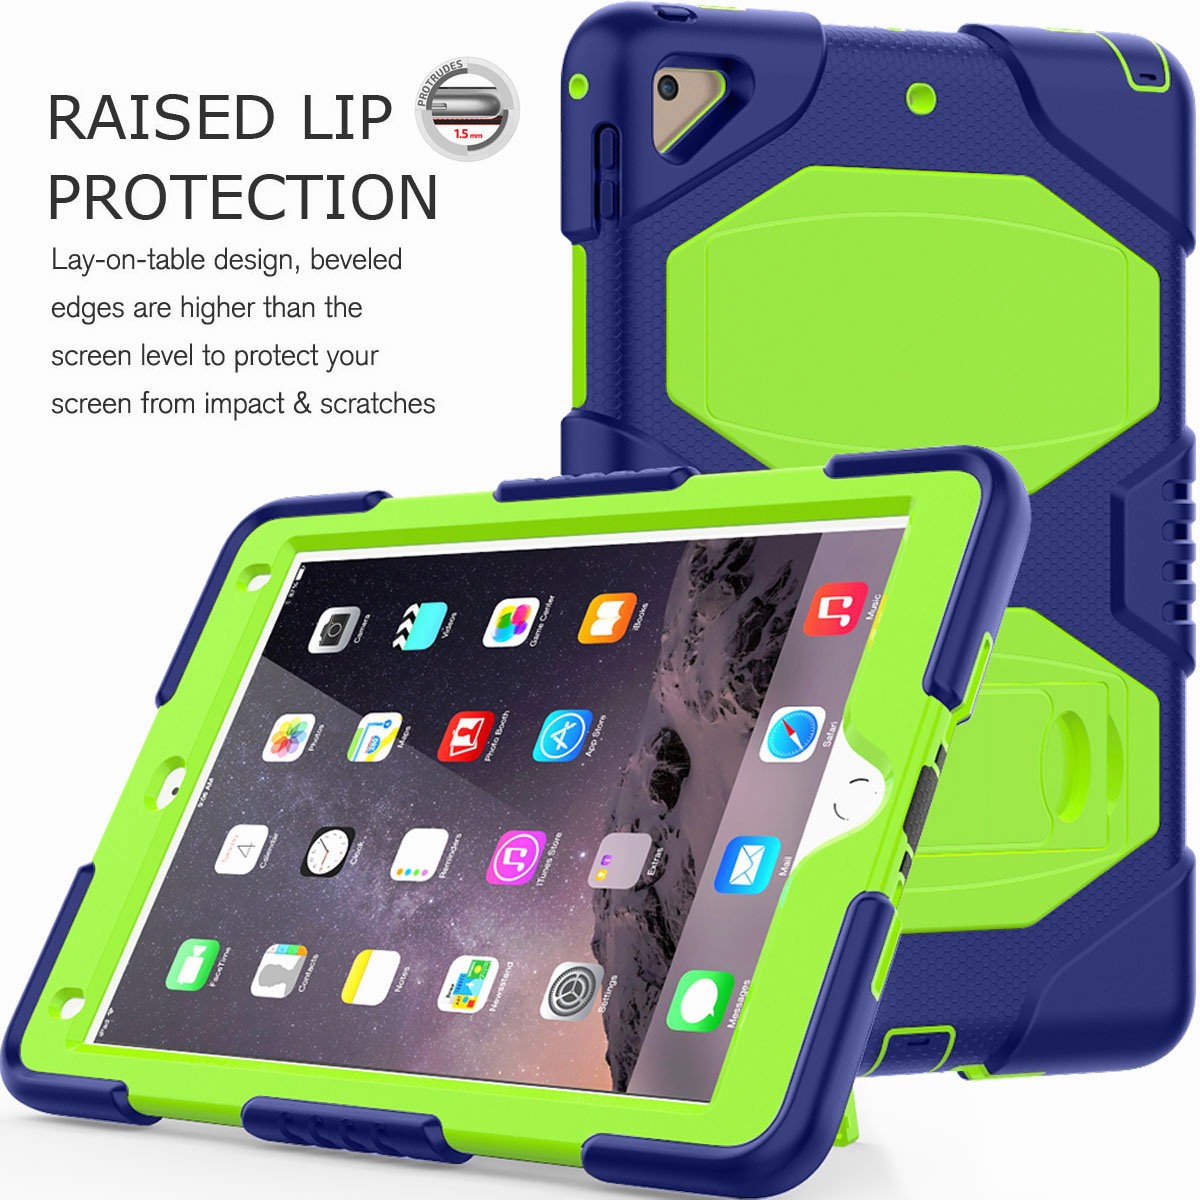 Hybrid-Rubber-Heavy-Duty-Shockproof-Case-Cover-For-iPad-9-7-6th-Generation-2018 thumbnail 63